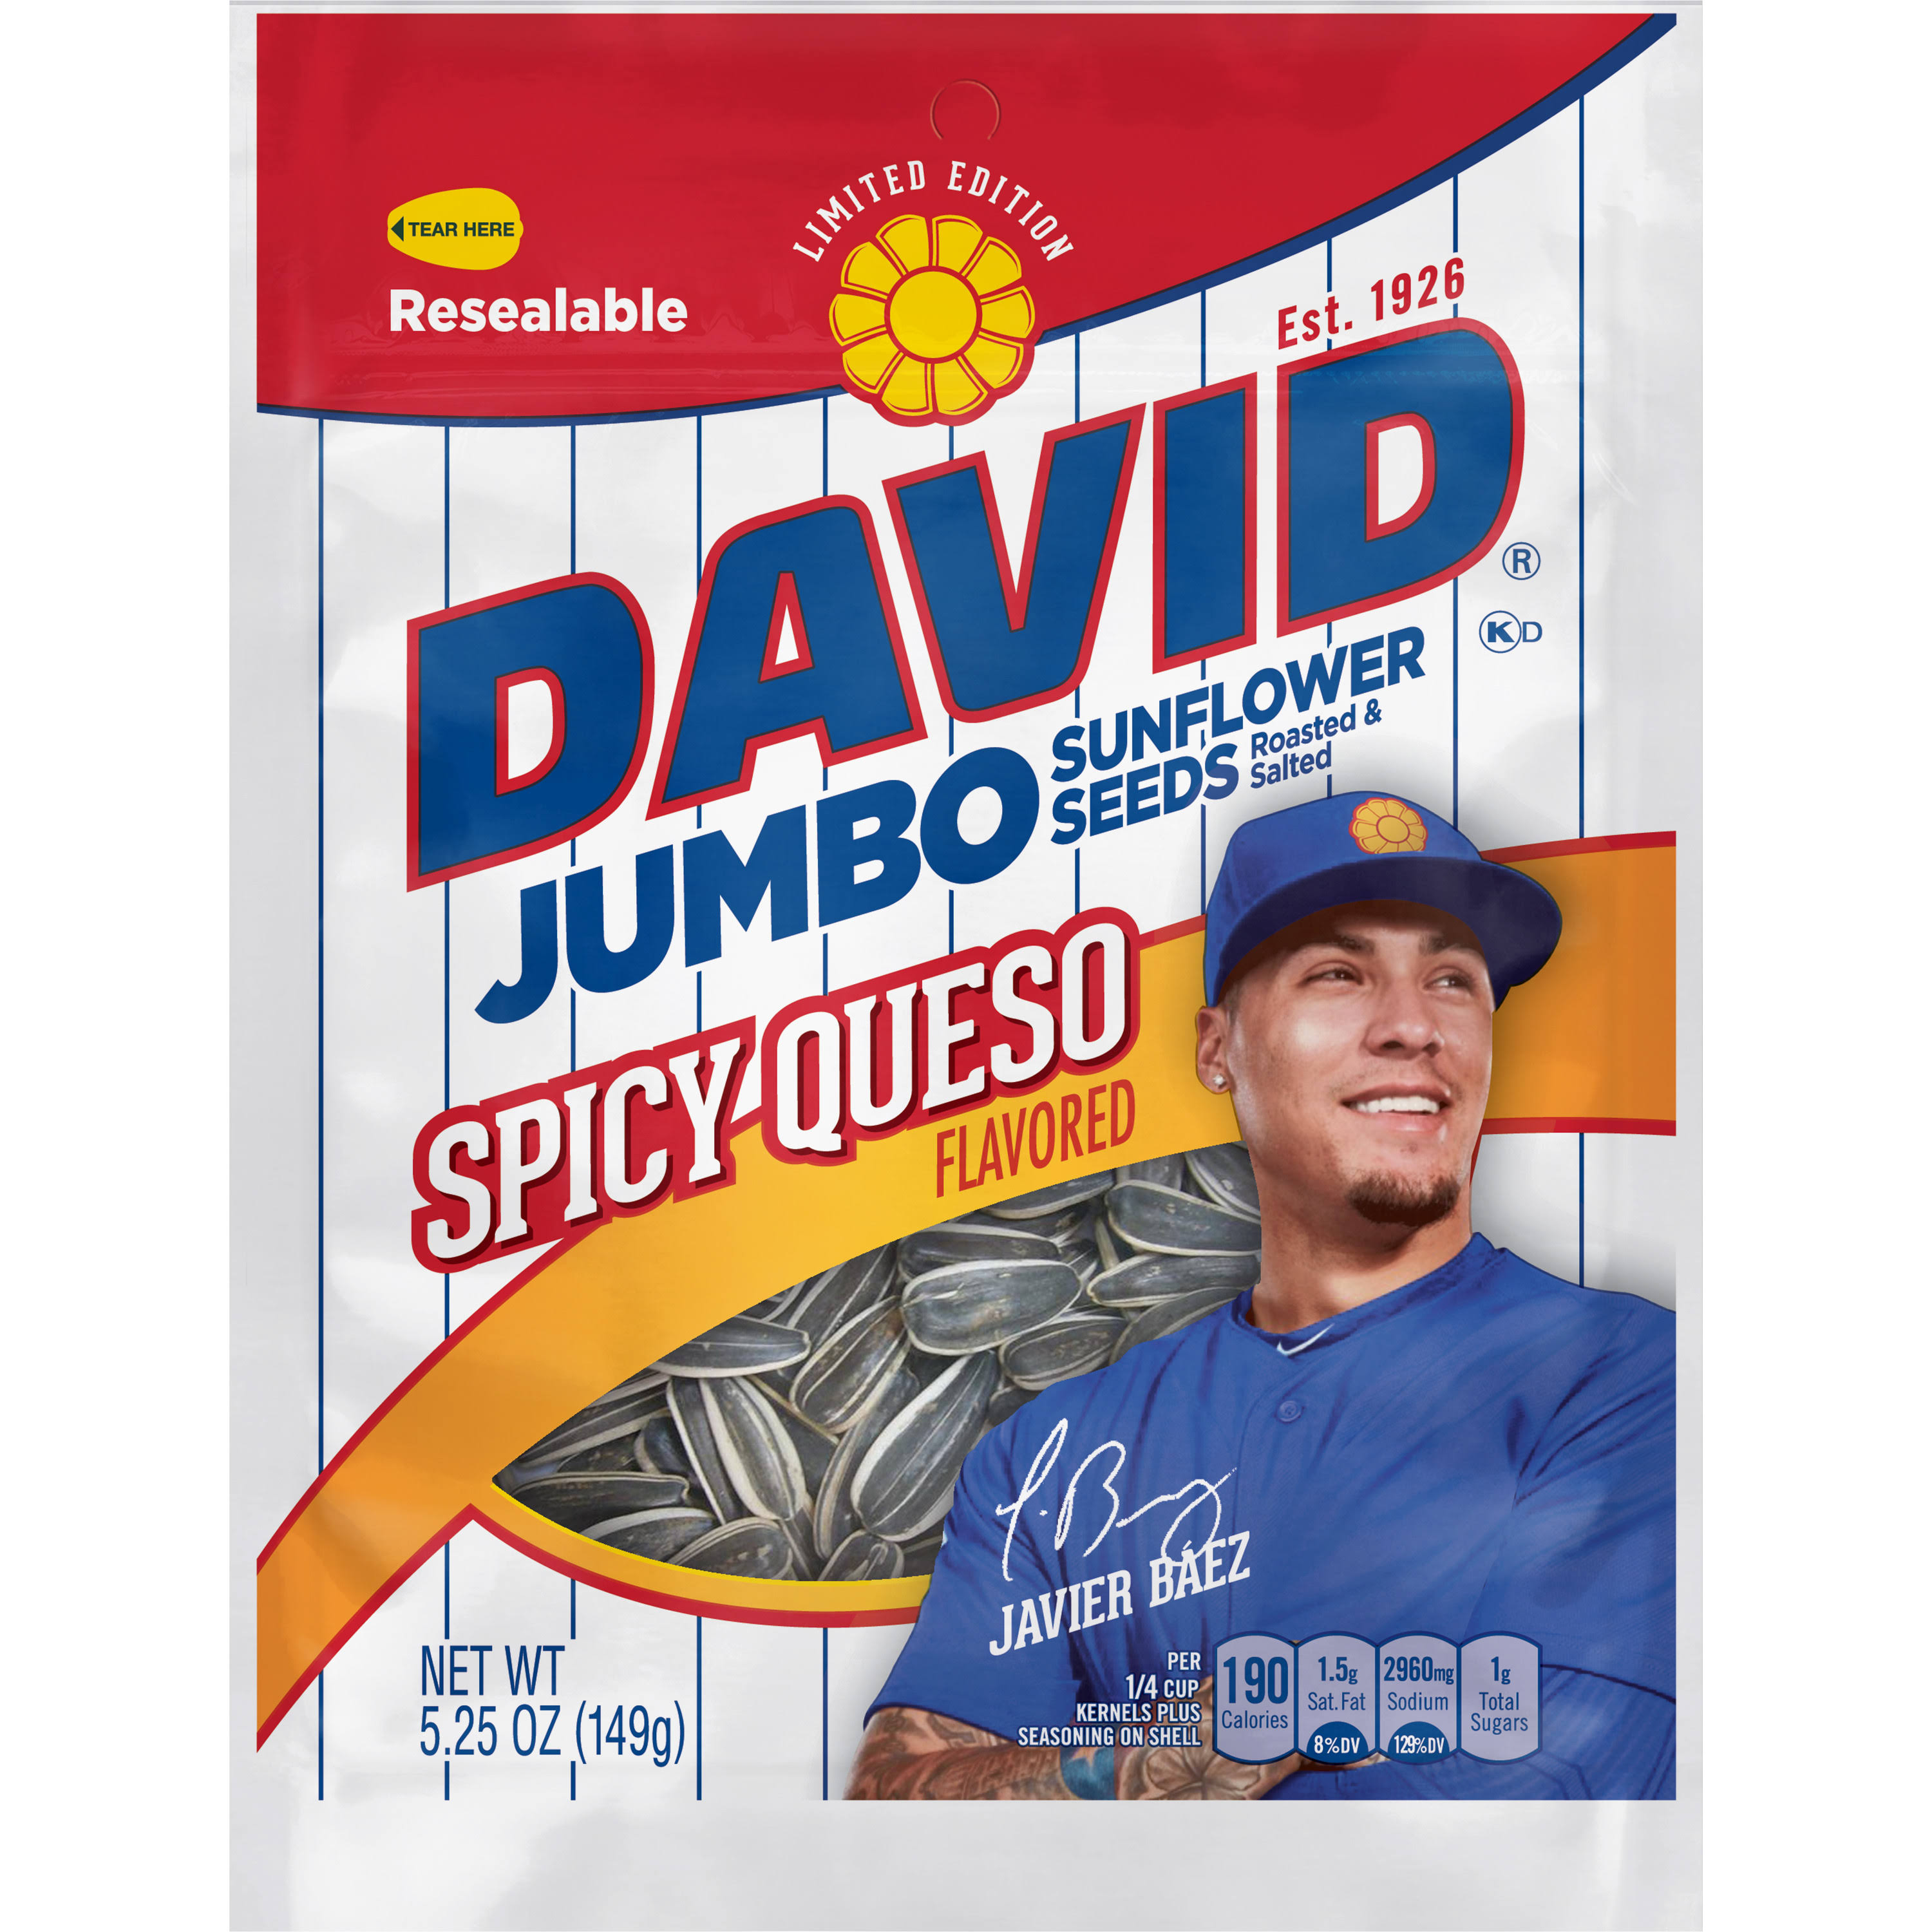 David Sunflower Seeds, Salted & Roasted, Spicy Queso, Jumbo - 5.25 oz